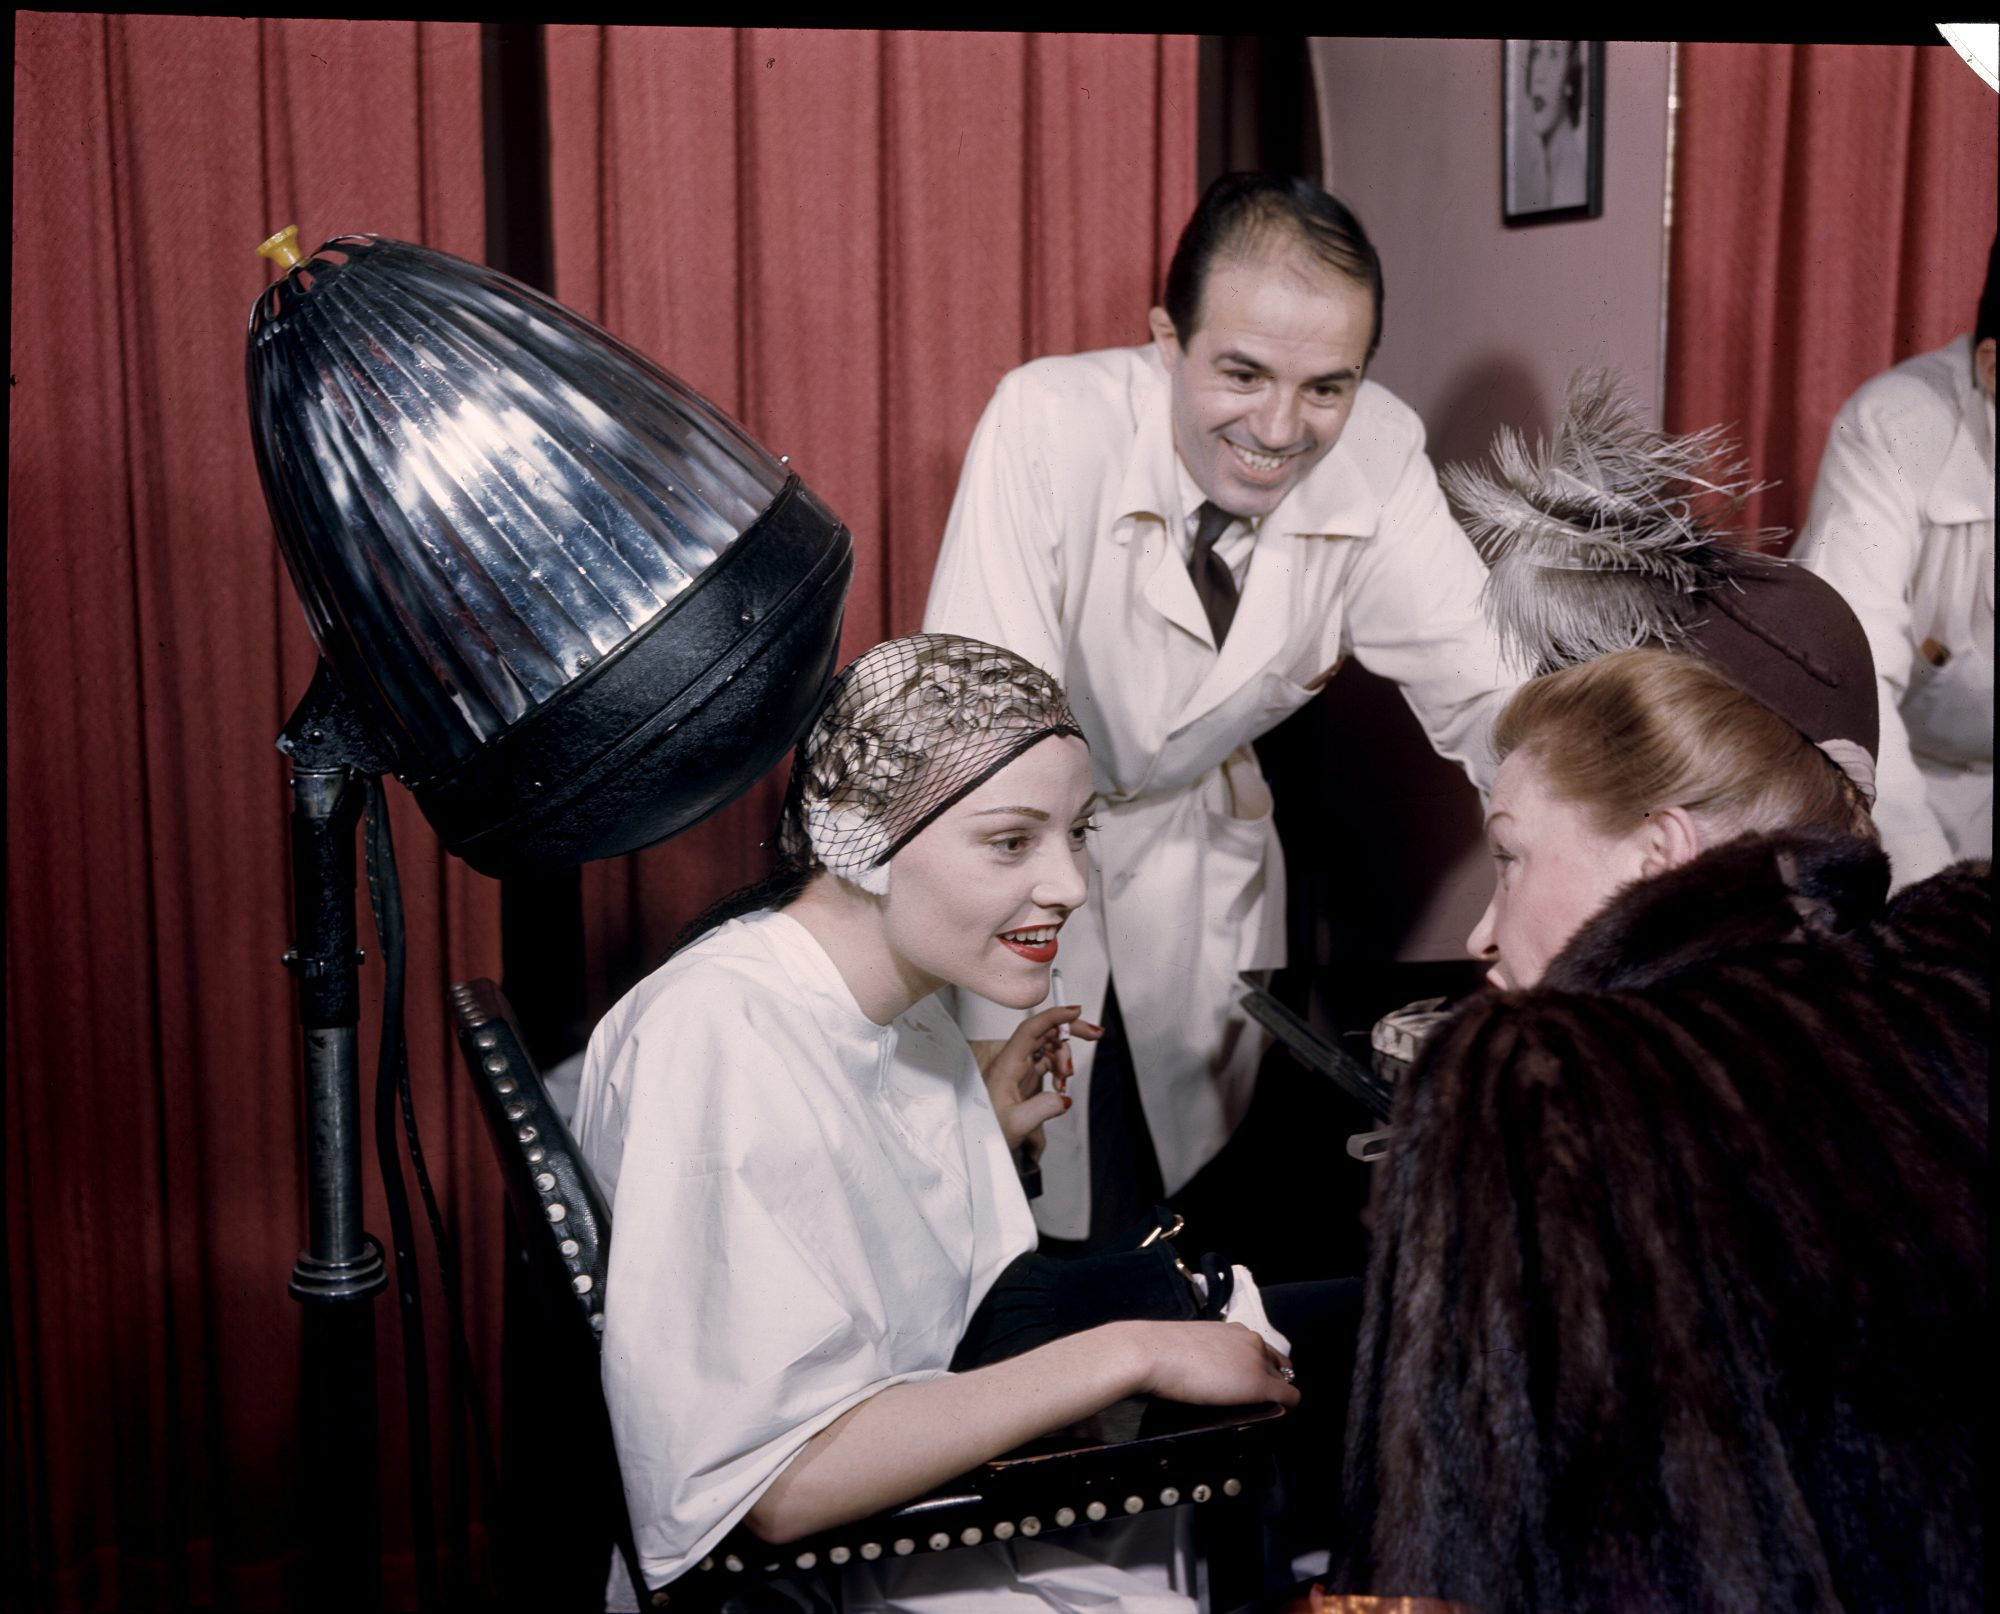 Women Gossiping at the Hair Salon